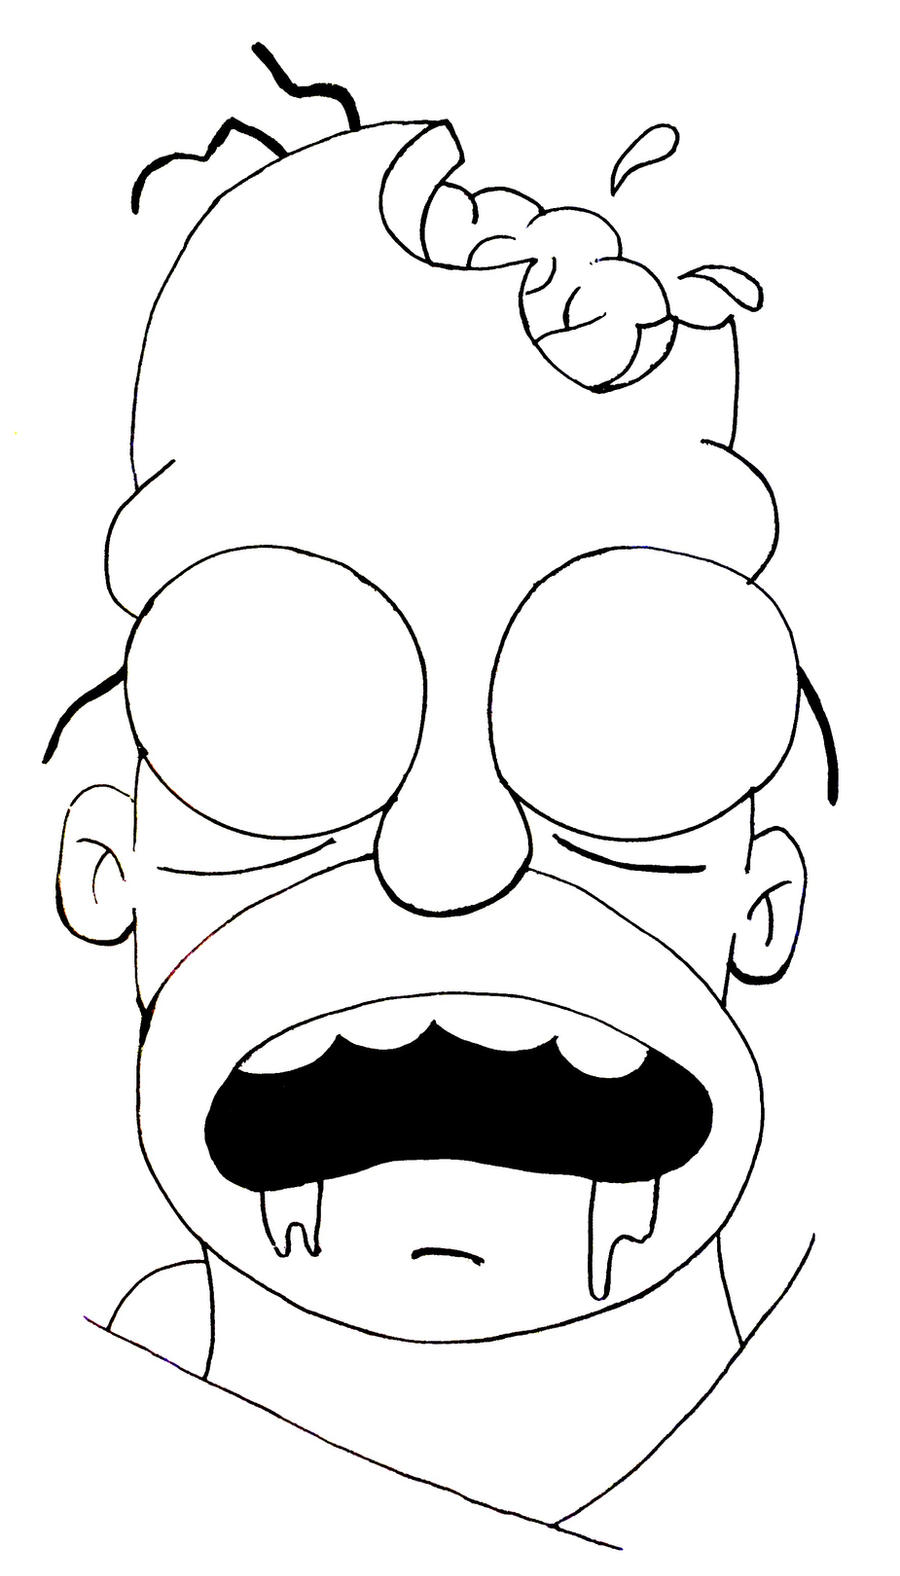 Zombie Face Line Drawing : The gallery for gt bart simpson face outline